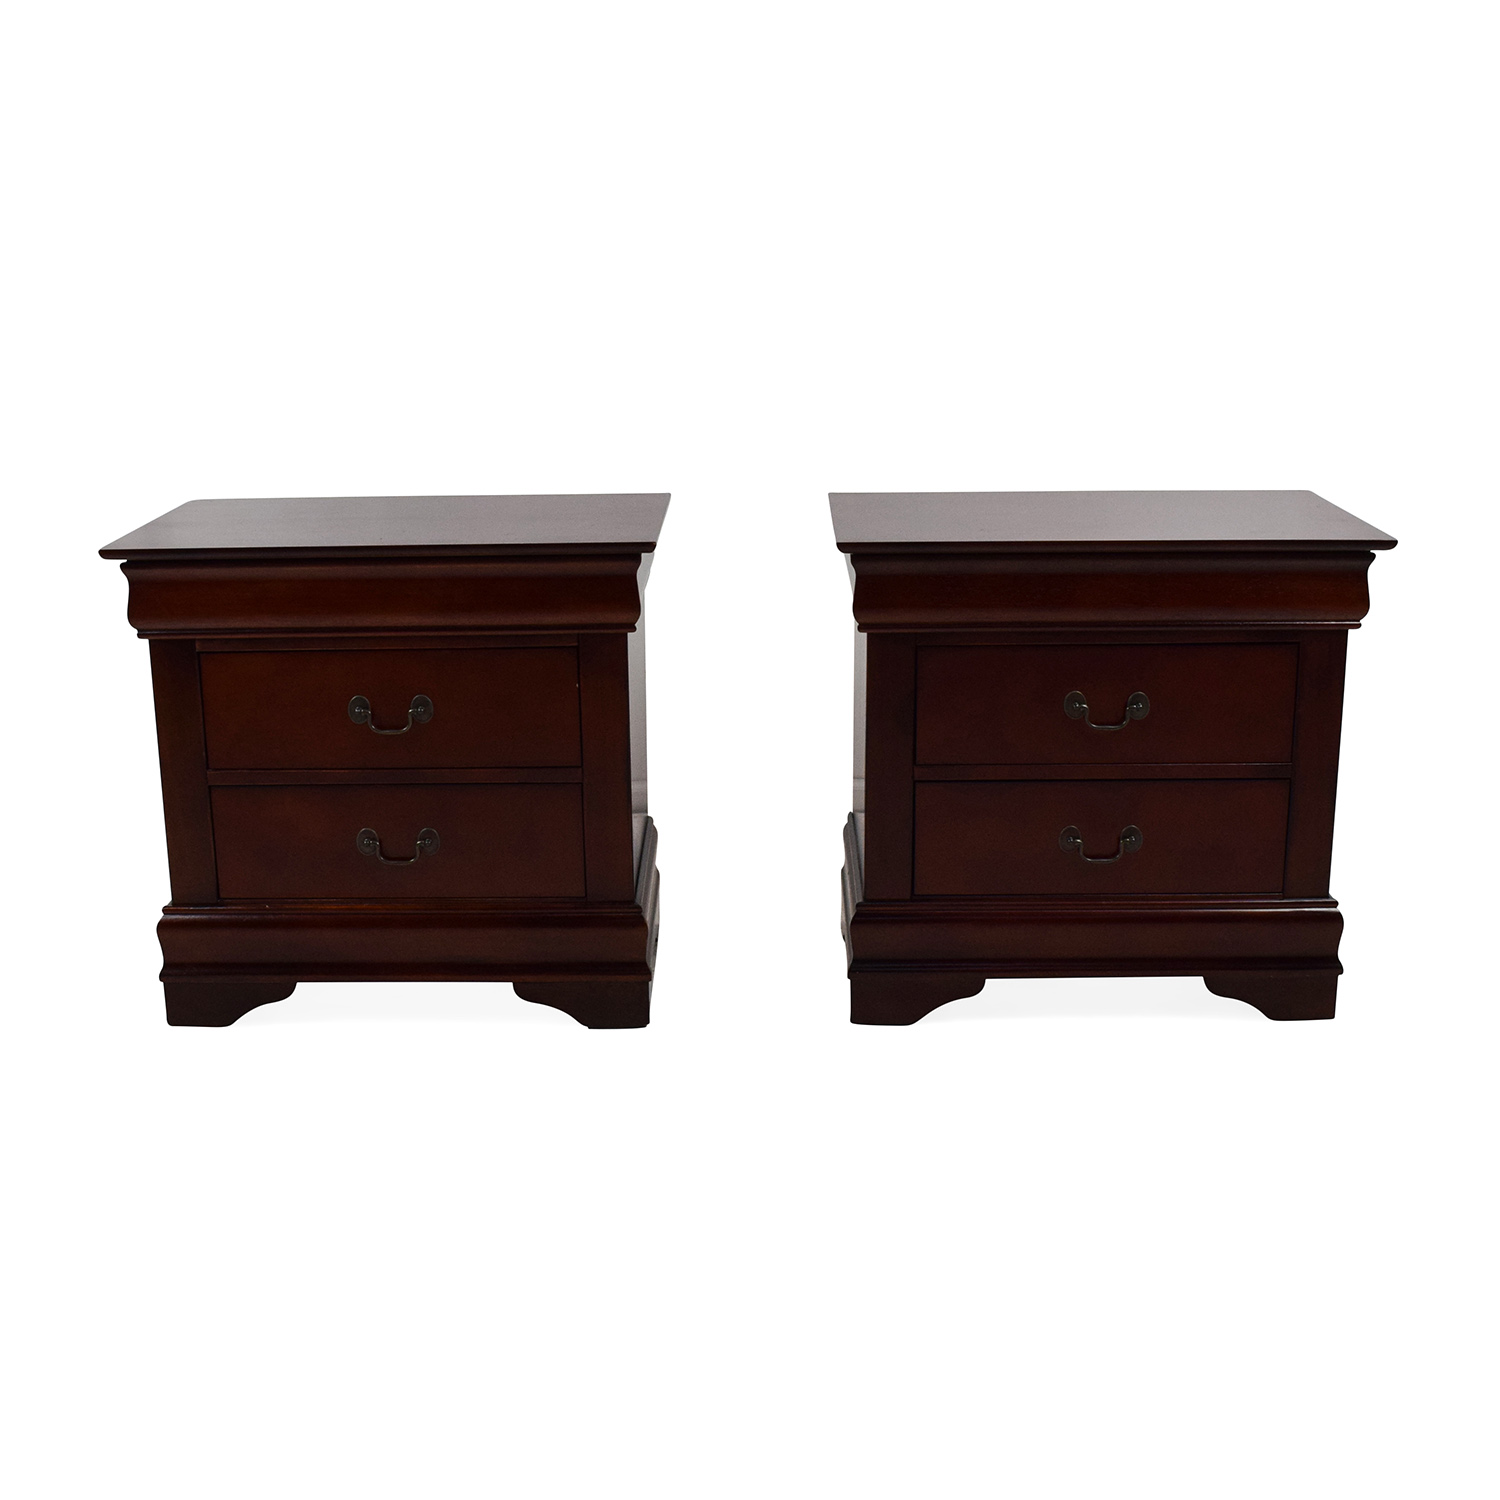 Set of 2 Wooden Nightstands with Drawers used